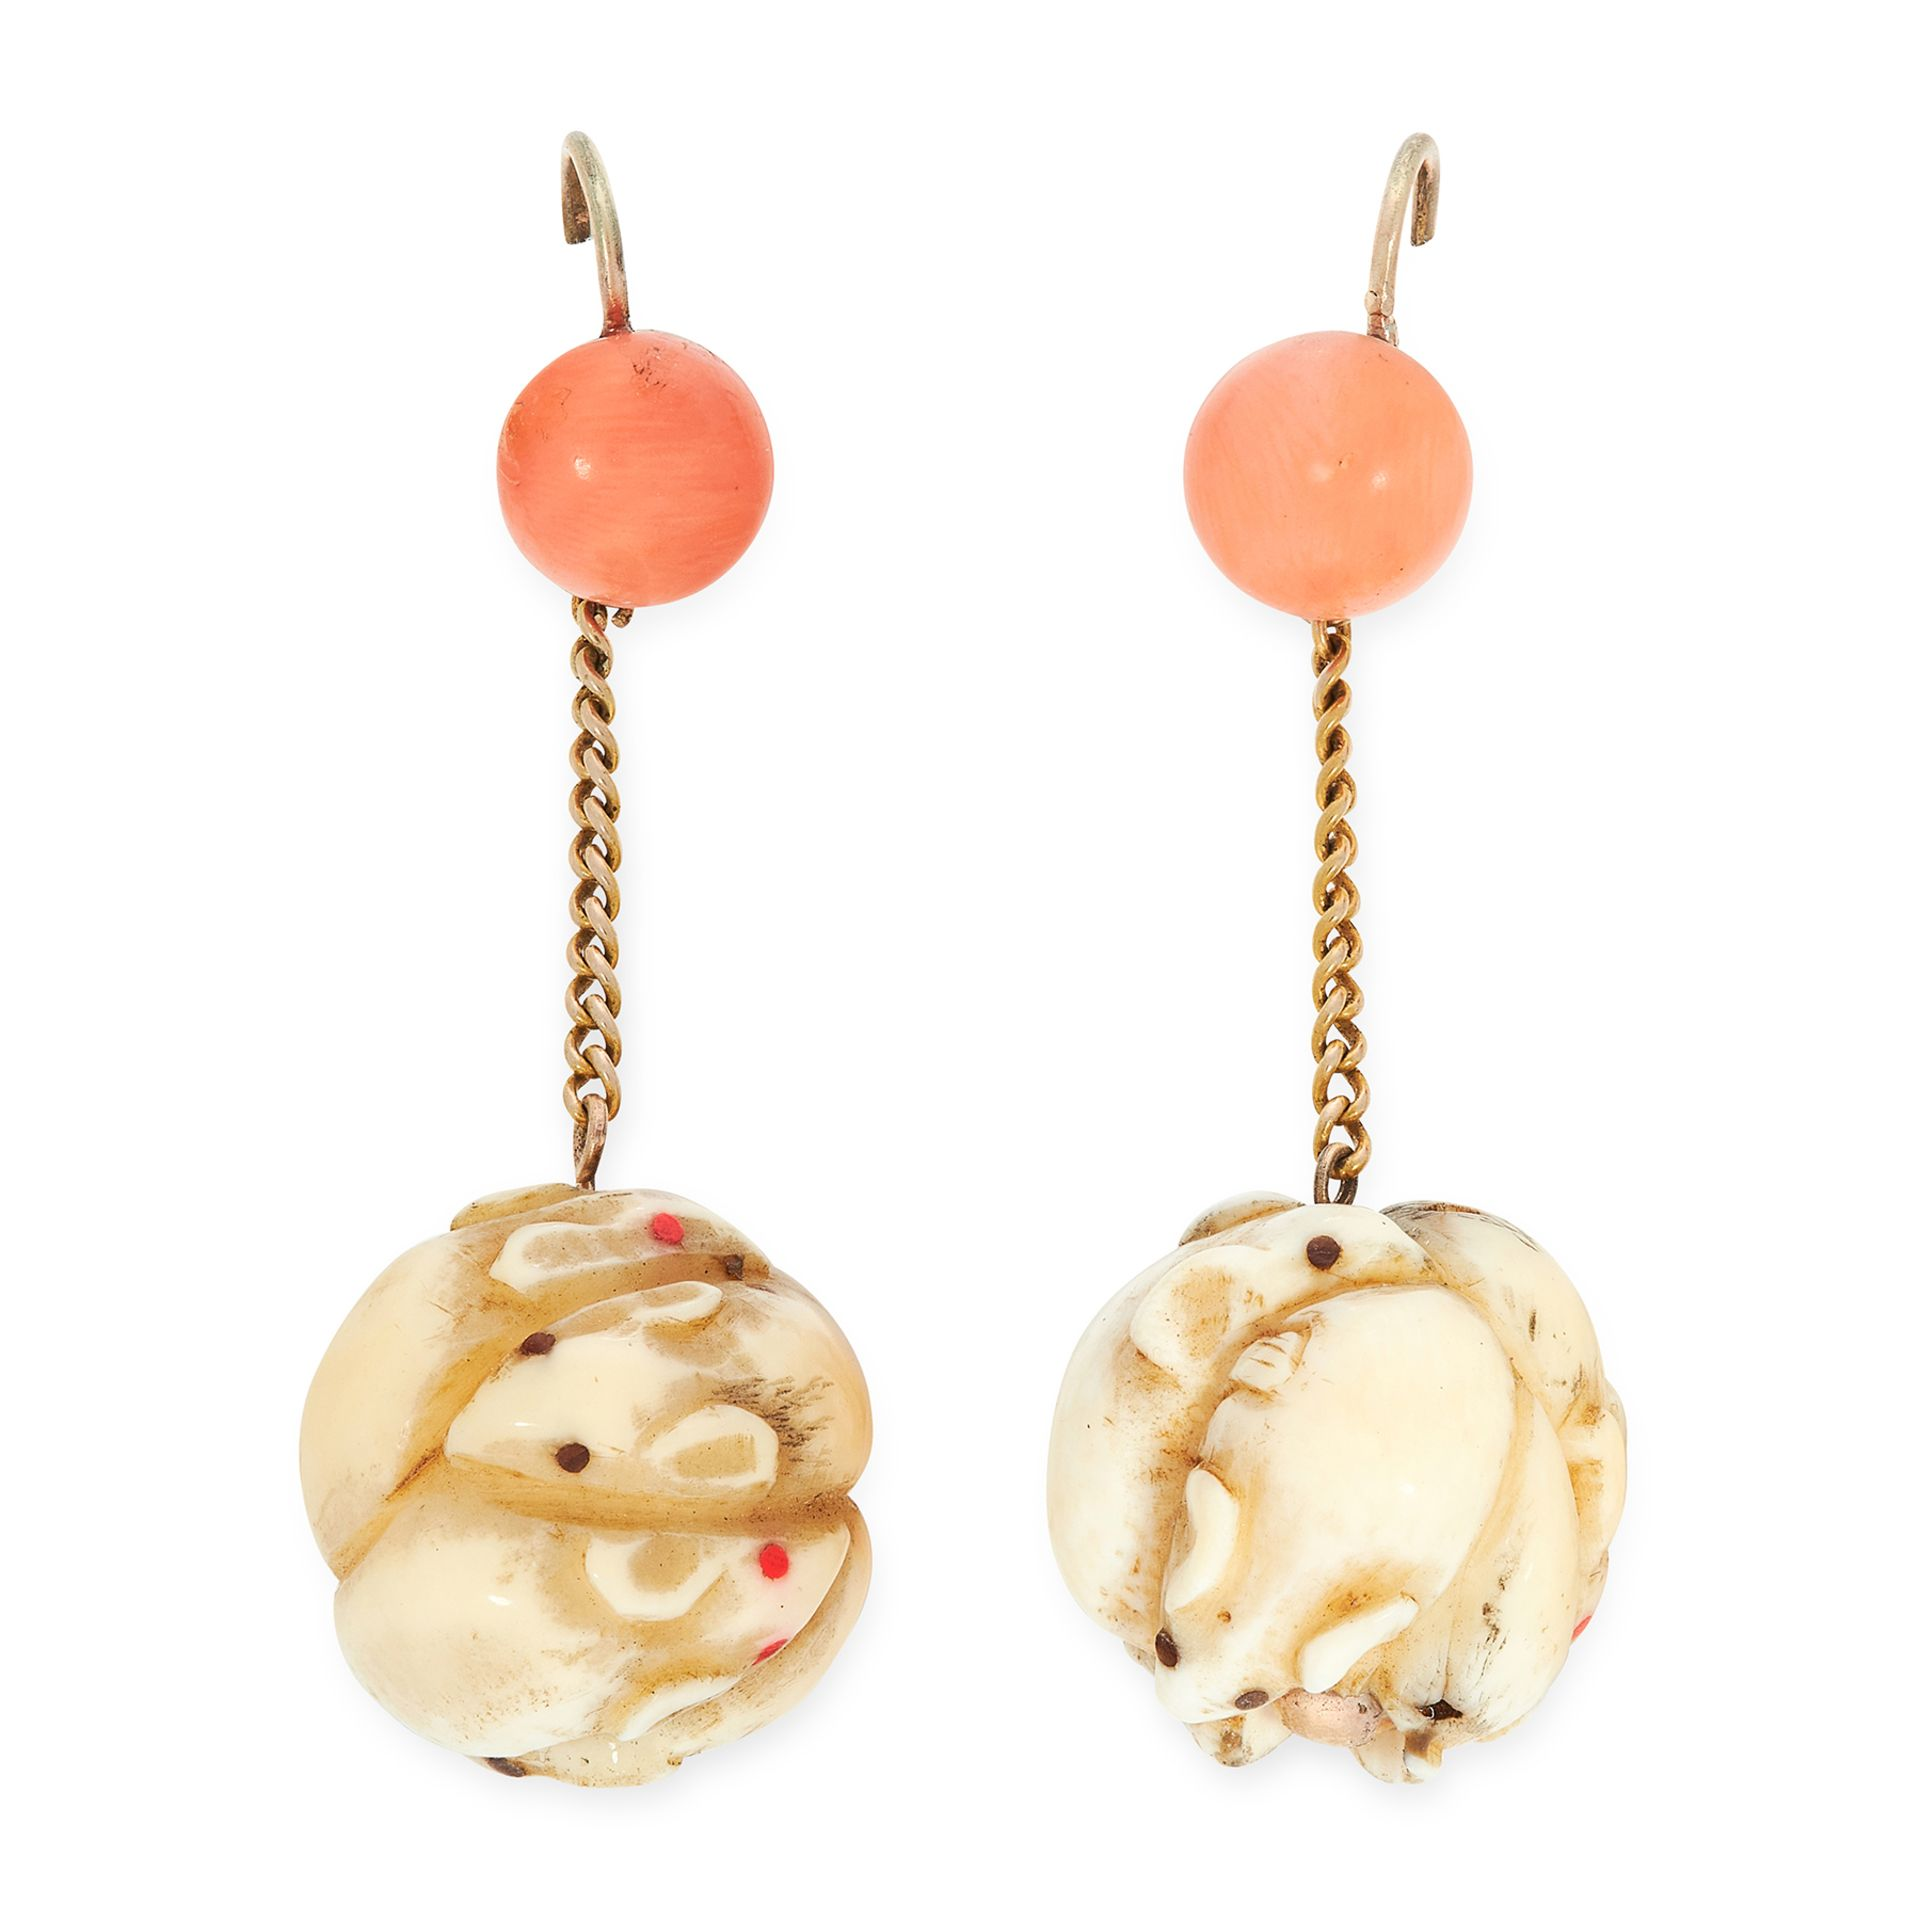 A PAIR OF ANTIQUE CORAL AND IVORY BEAD EARRINGS in yellow gold, each set with a coral bead